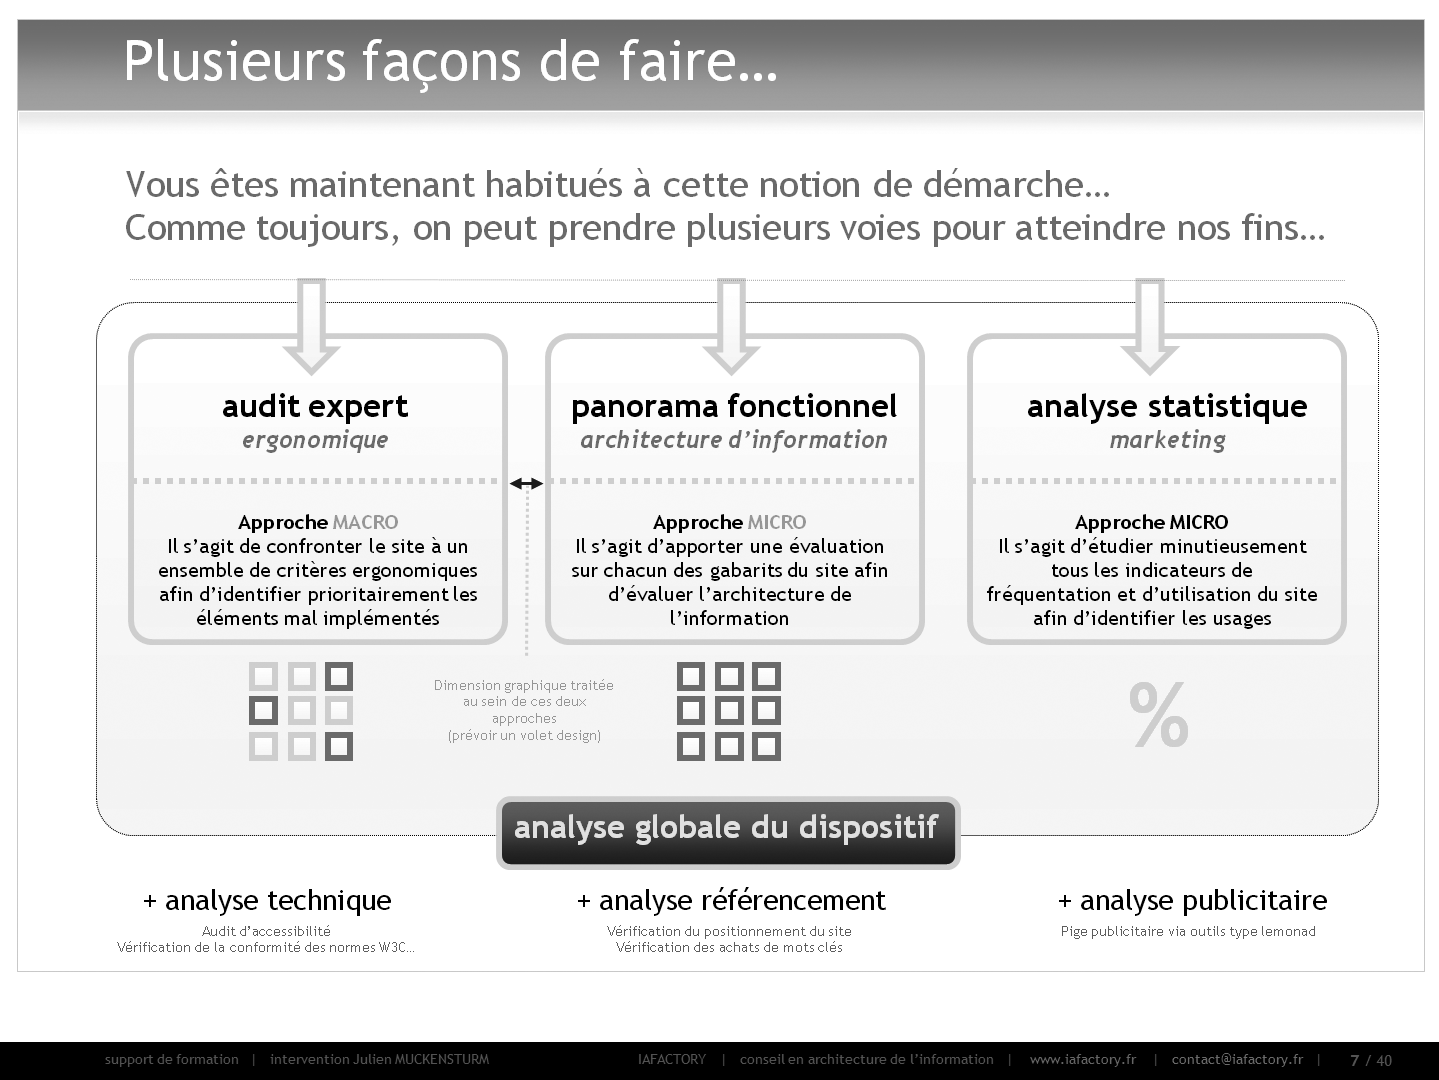 formation universitaire en conception - réaliser un audit (typologies d'audit)